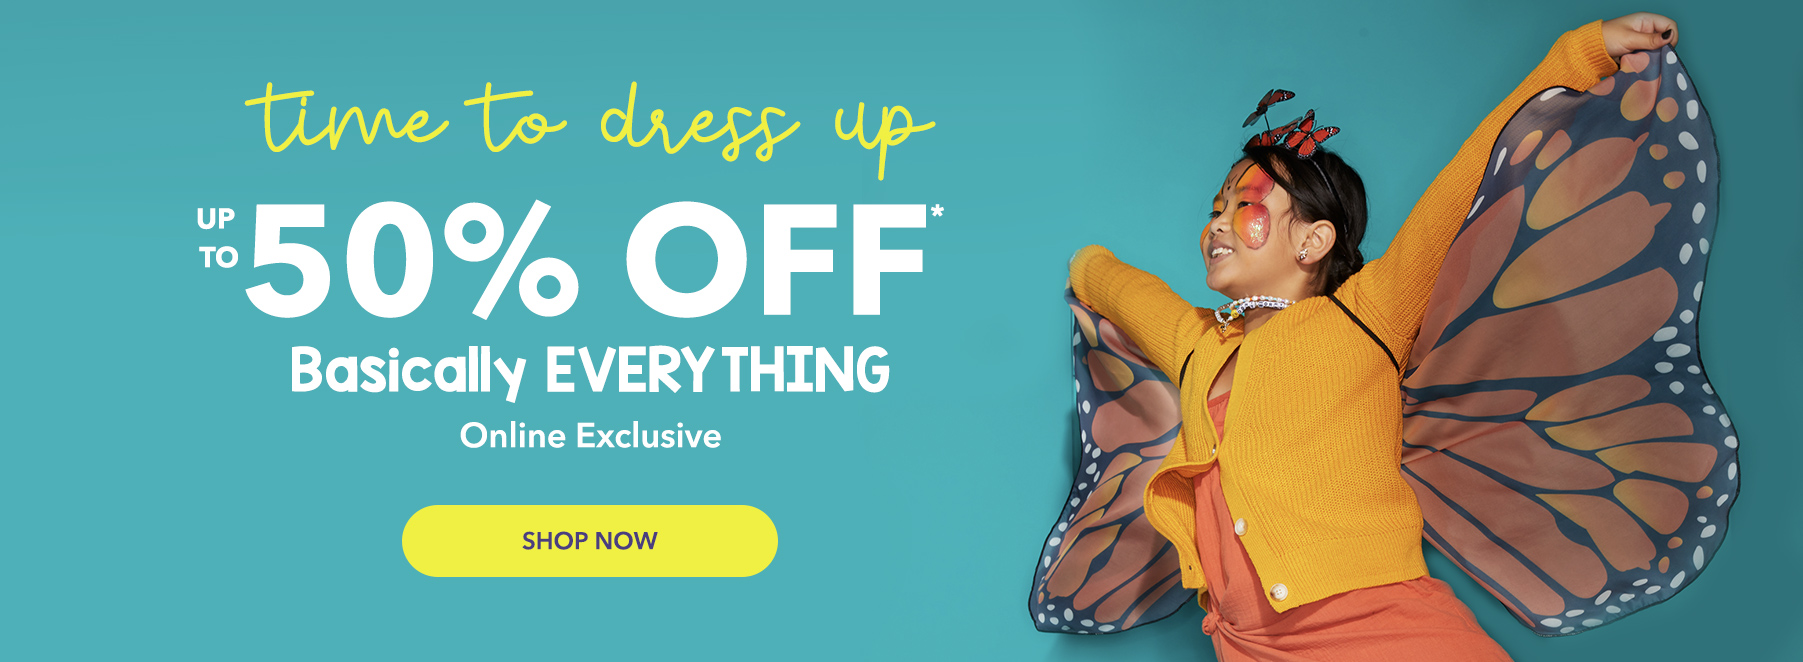 It's an accessories world...time to dress up! Up to 50% OFF* basically everything. Online exclusive.